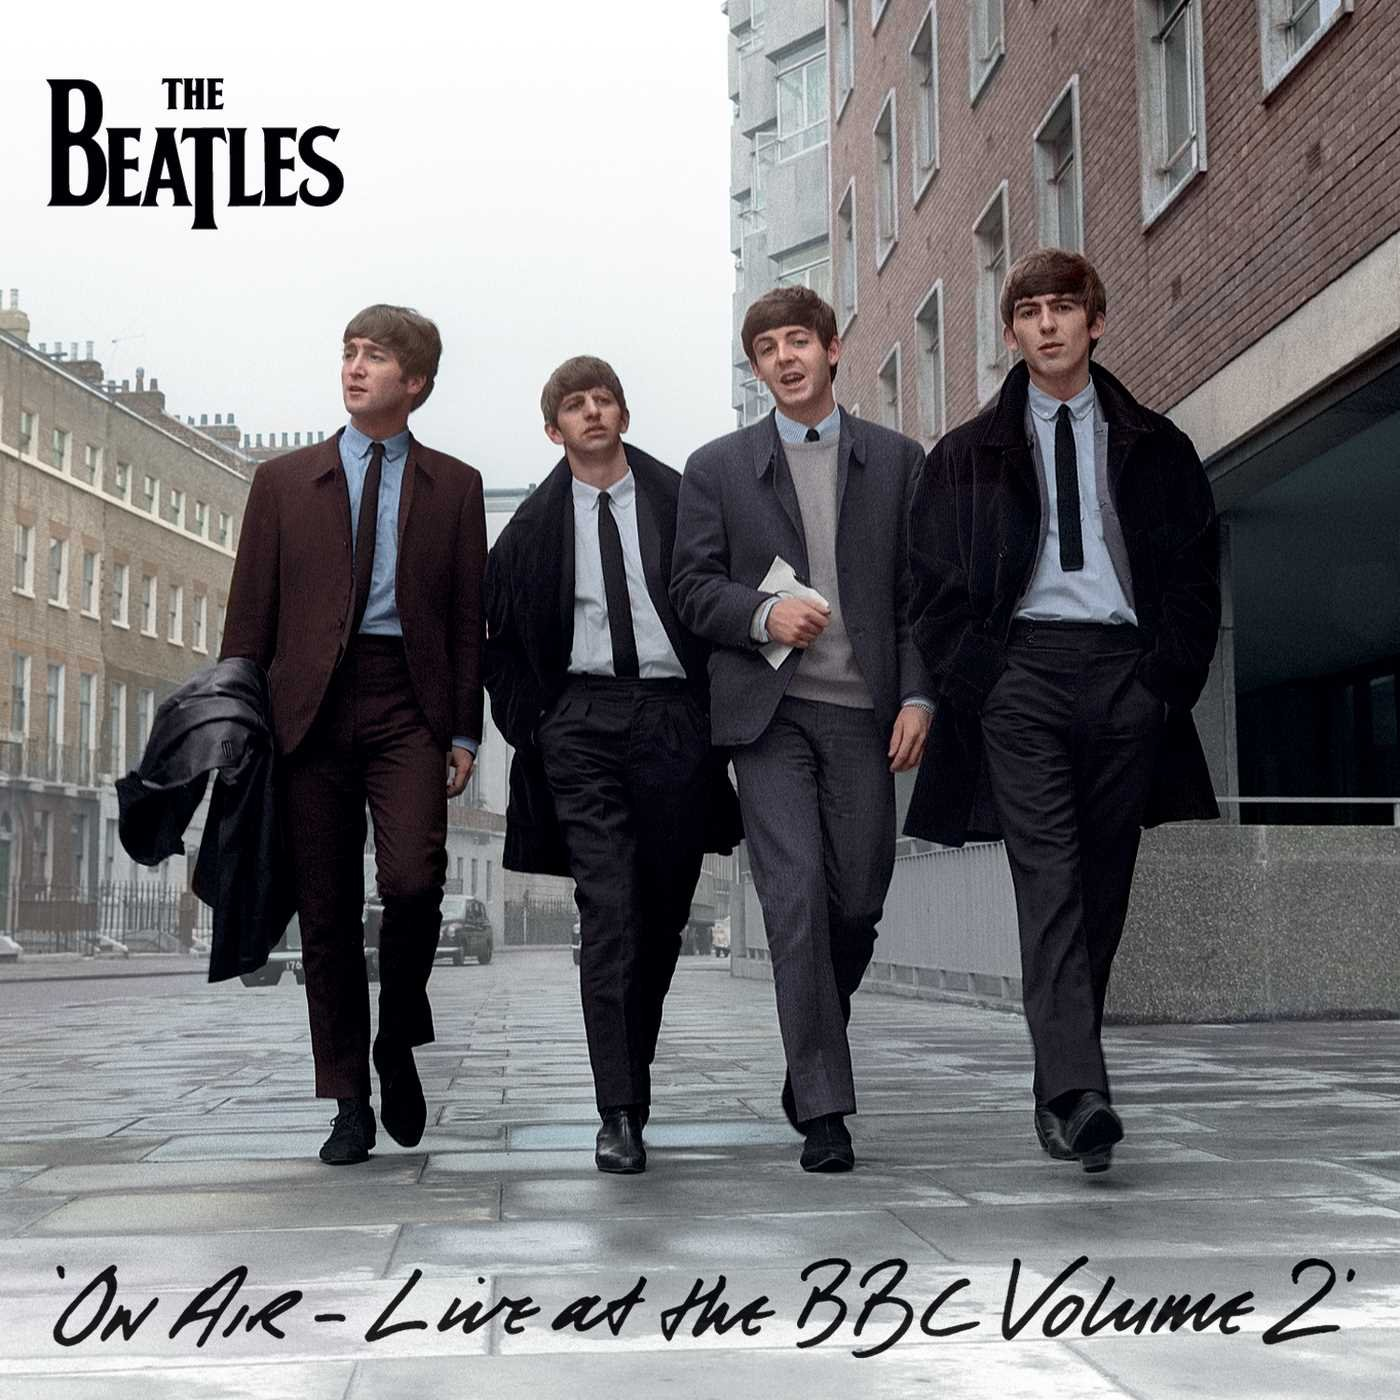 On Air - Live At The BBC Volume 2 [3 LP] by VINYL